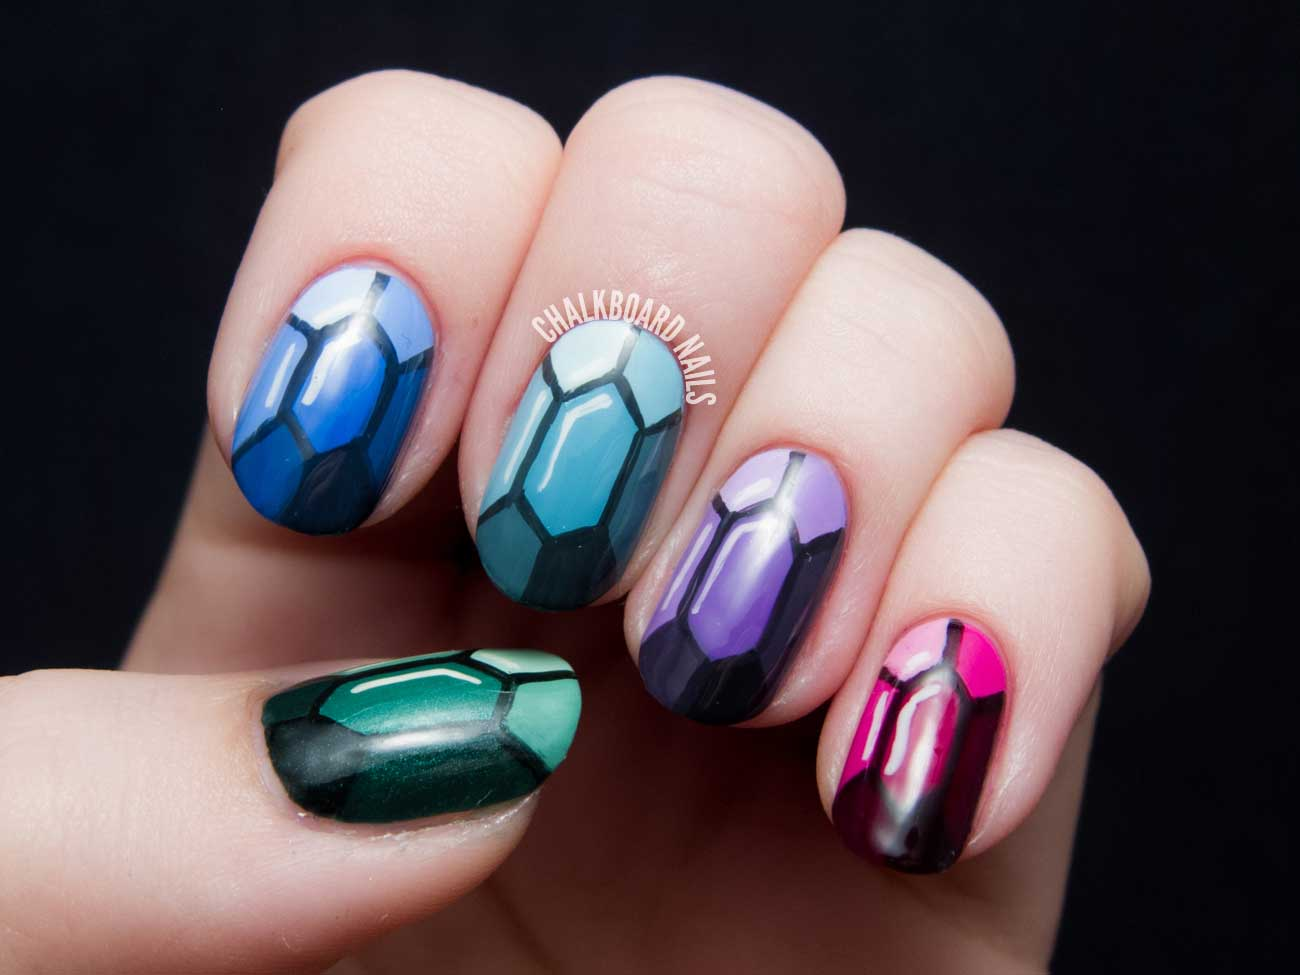 Precious Gems Nail Art by Chalkboard Nails